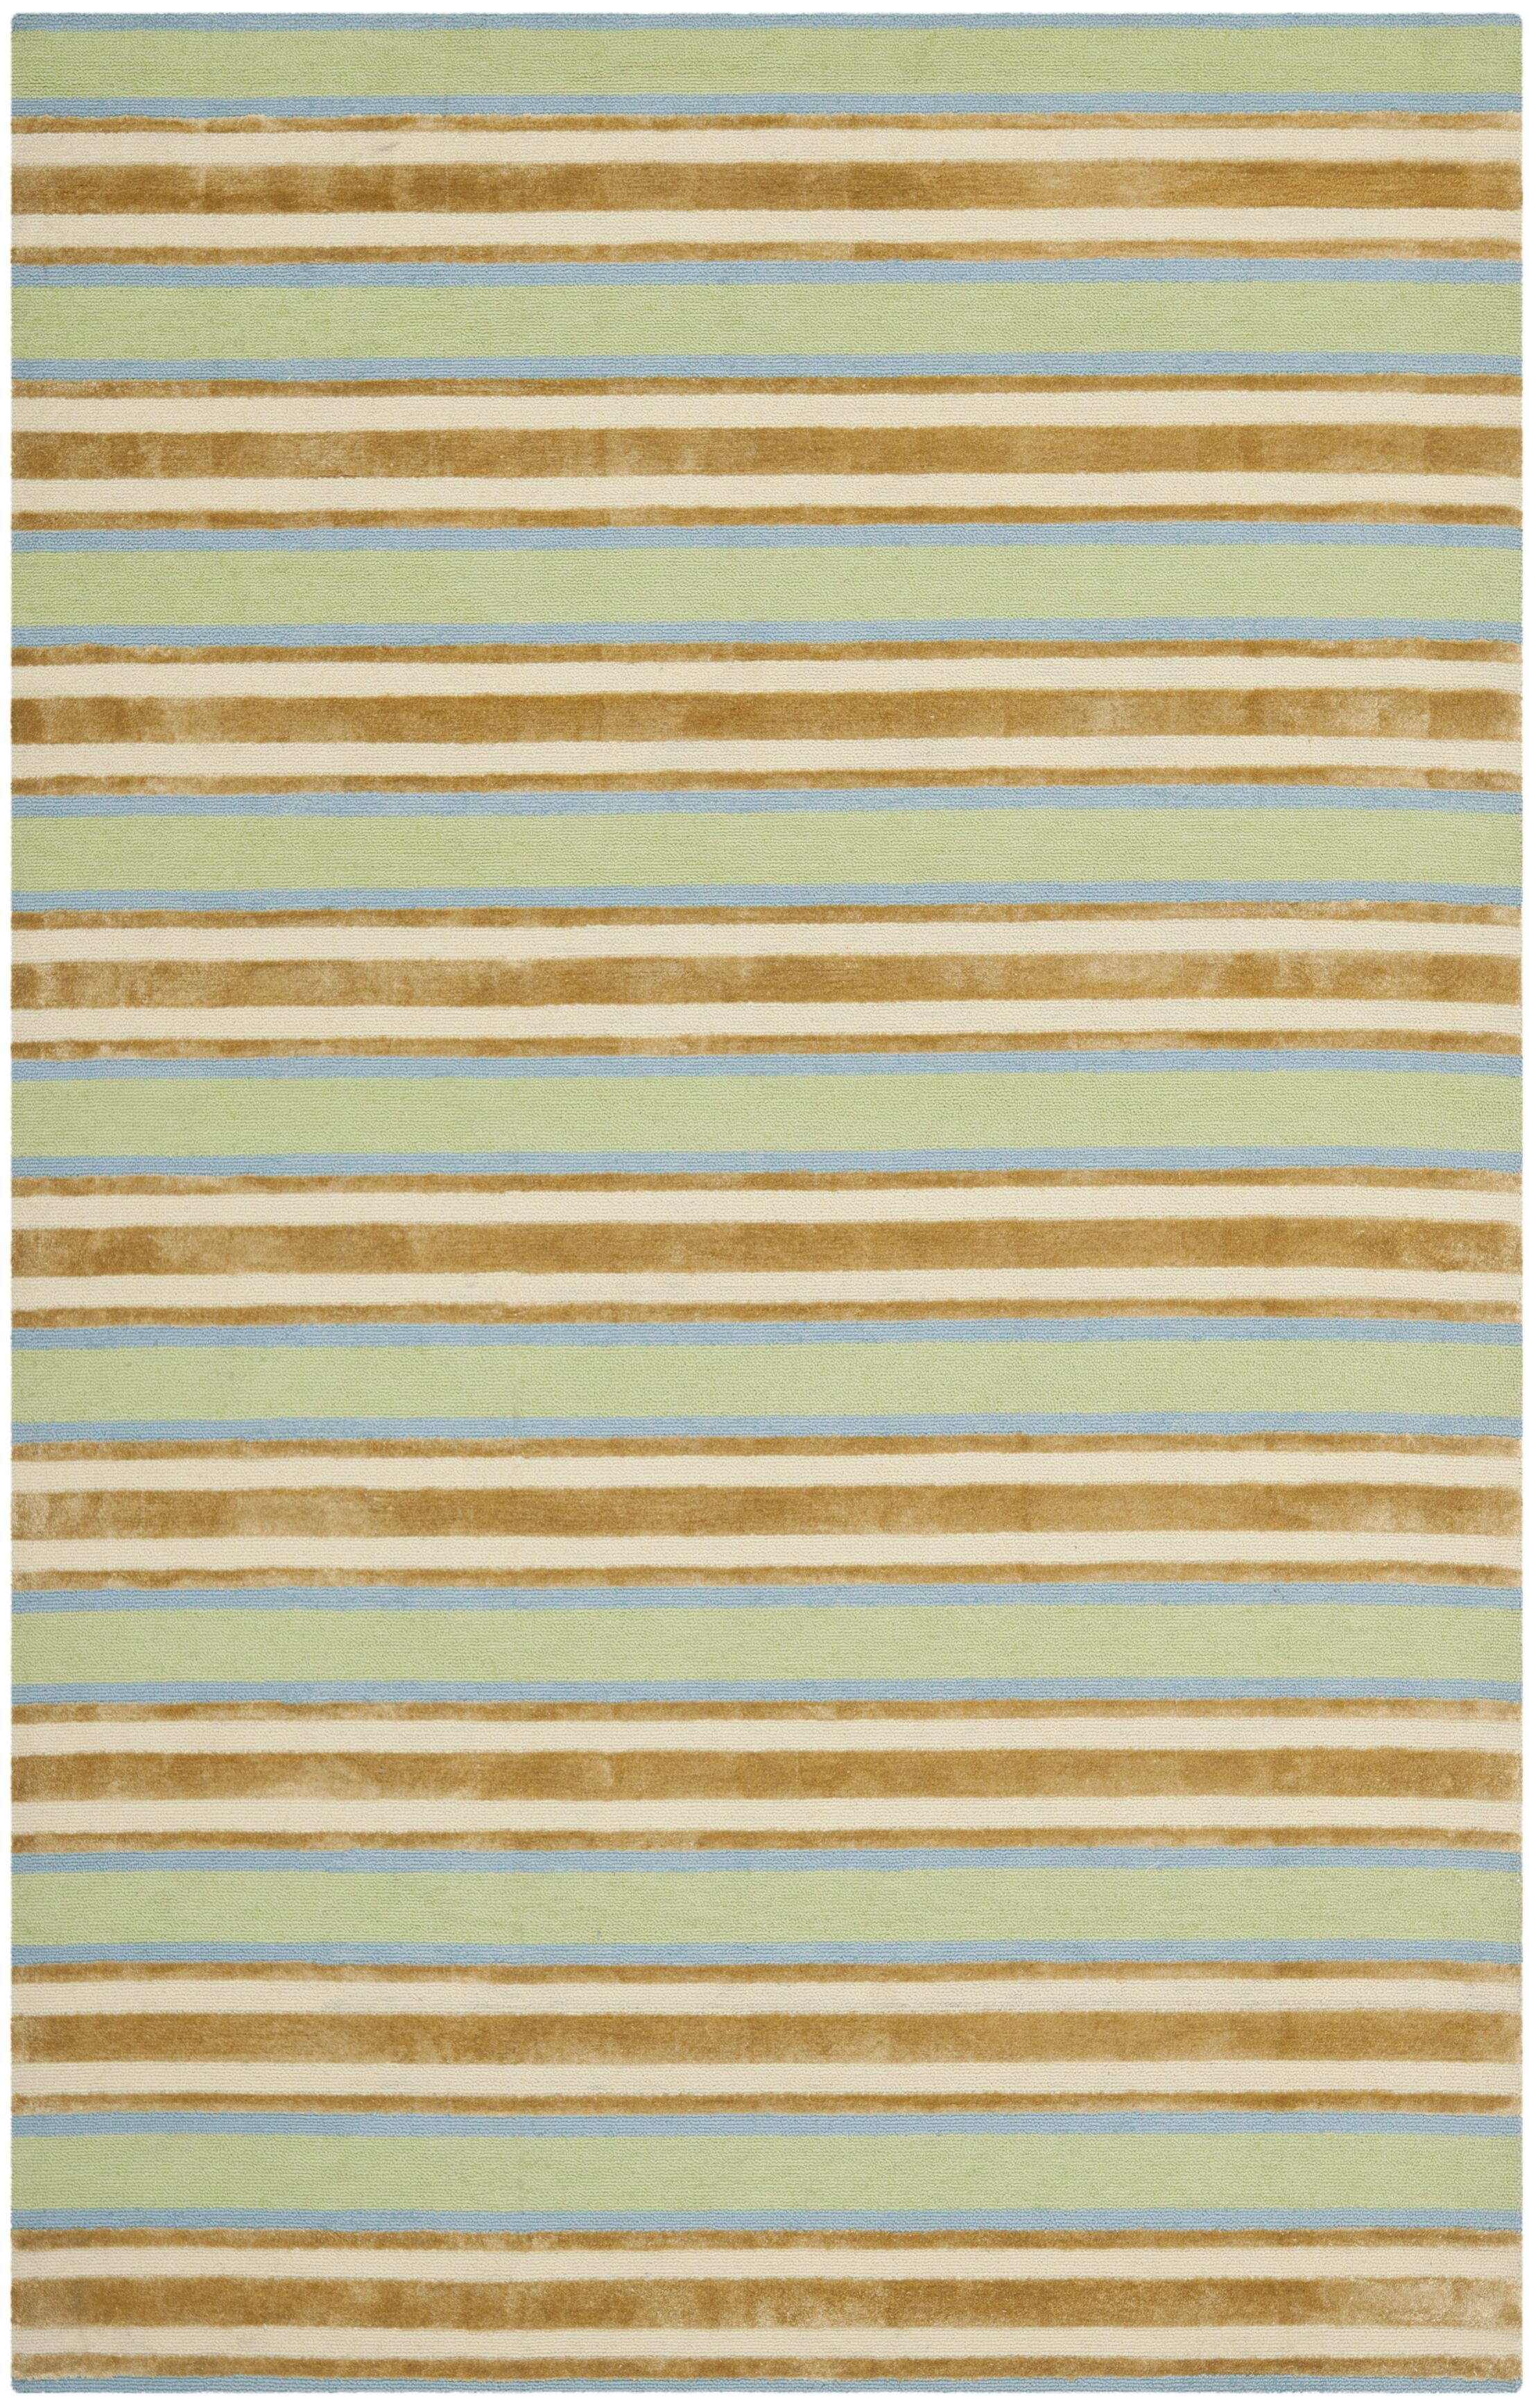 Orange / Green Striped Rug Rug Size: Runner 2'3